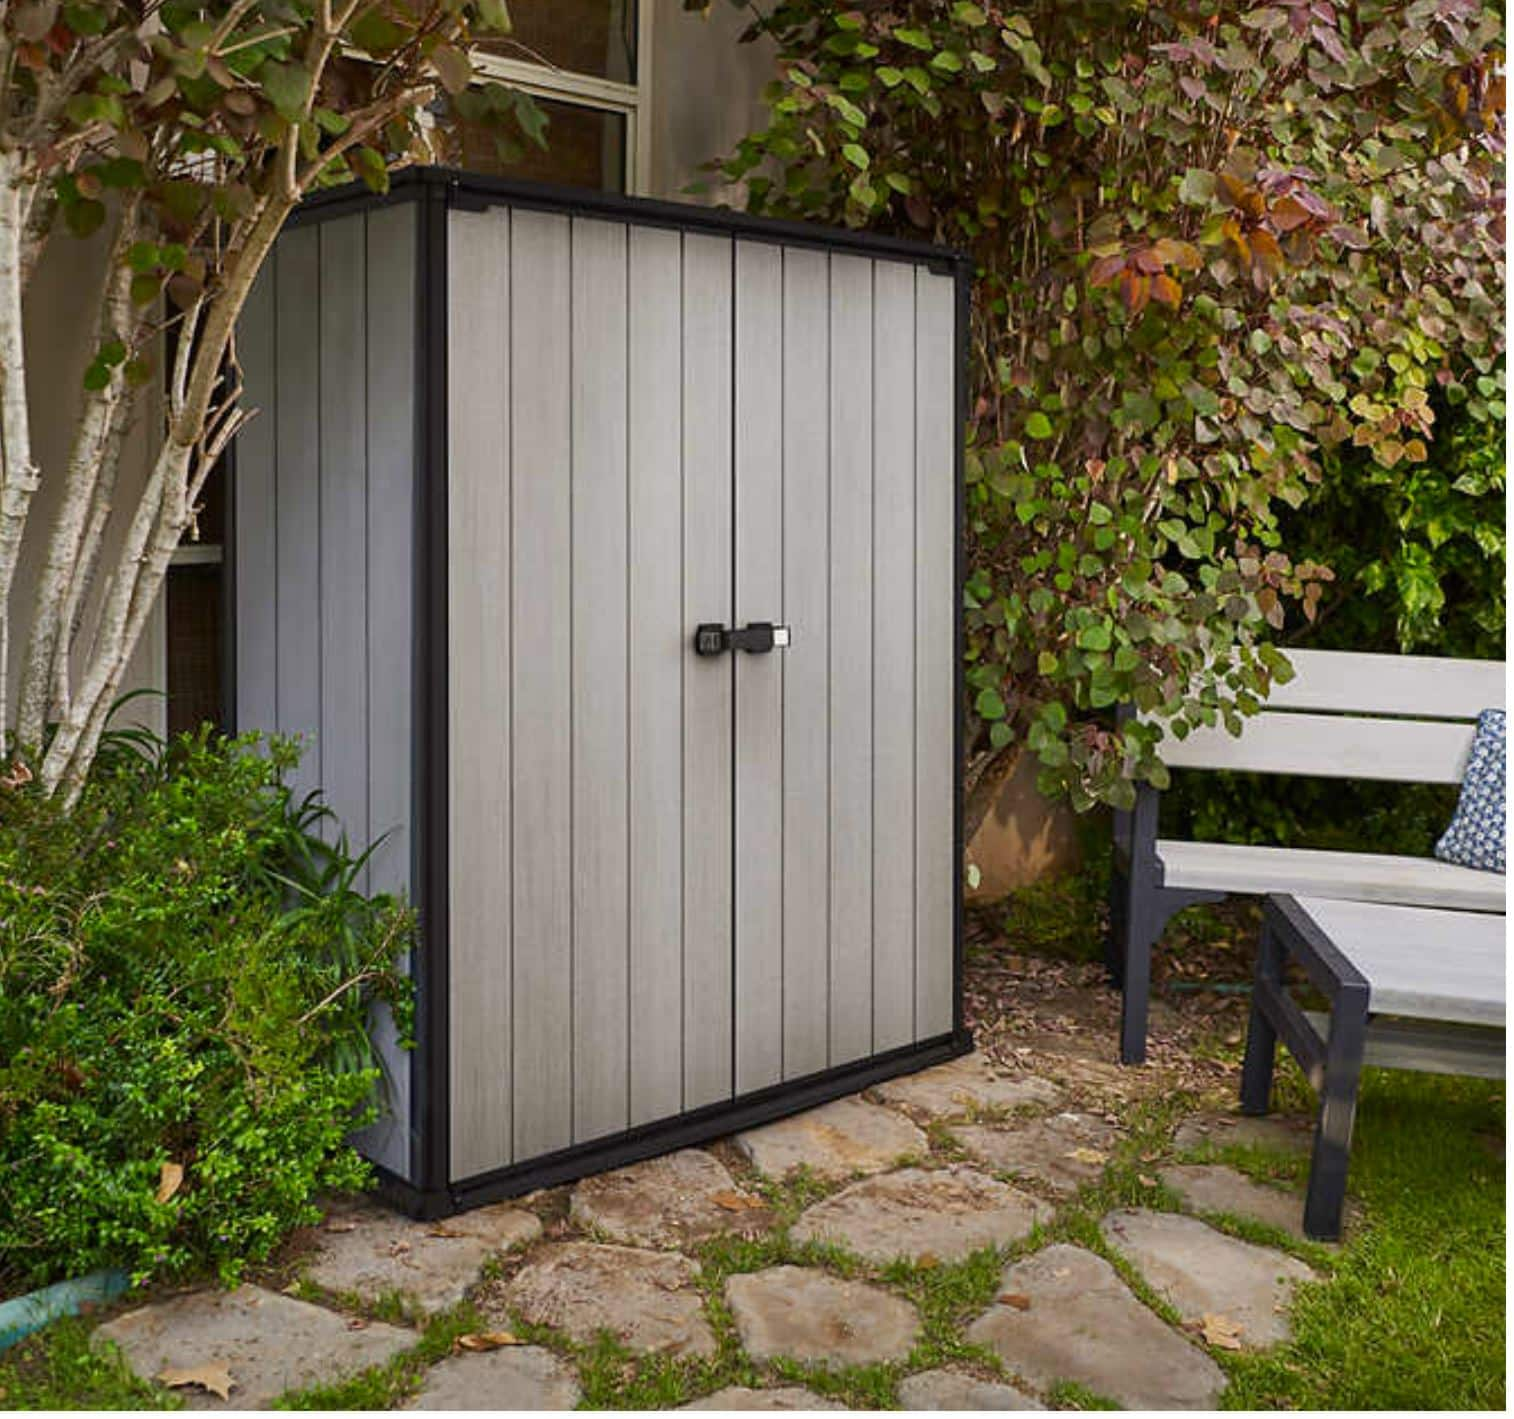 Keter High Store Storage Shed (Latest version) at Costco -- $300